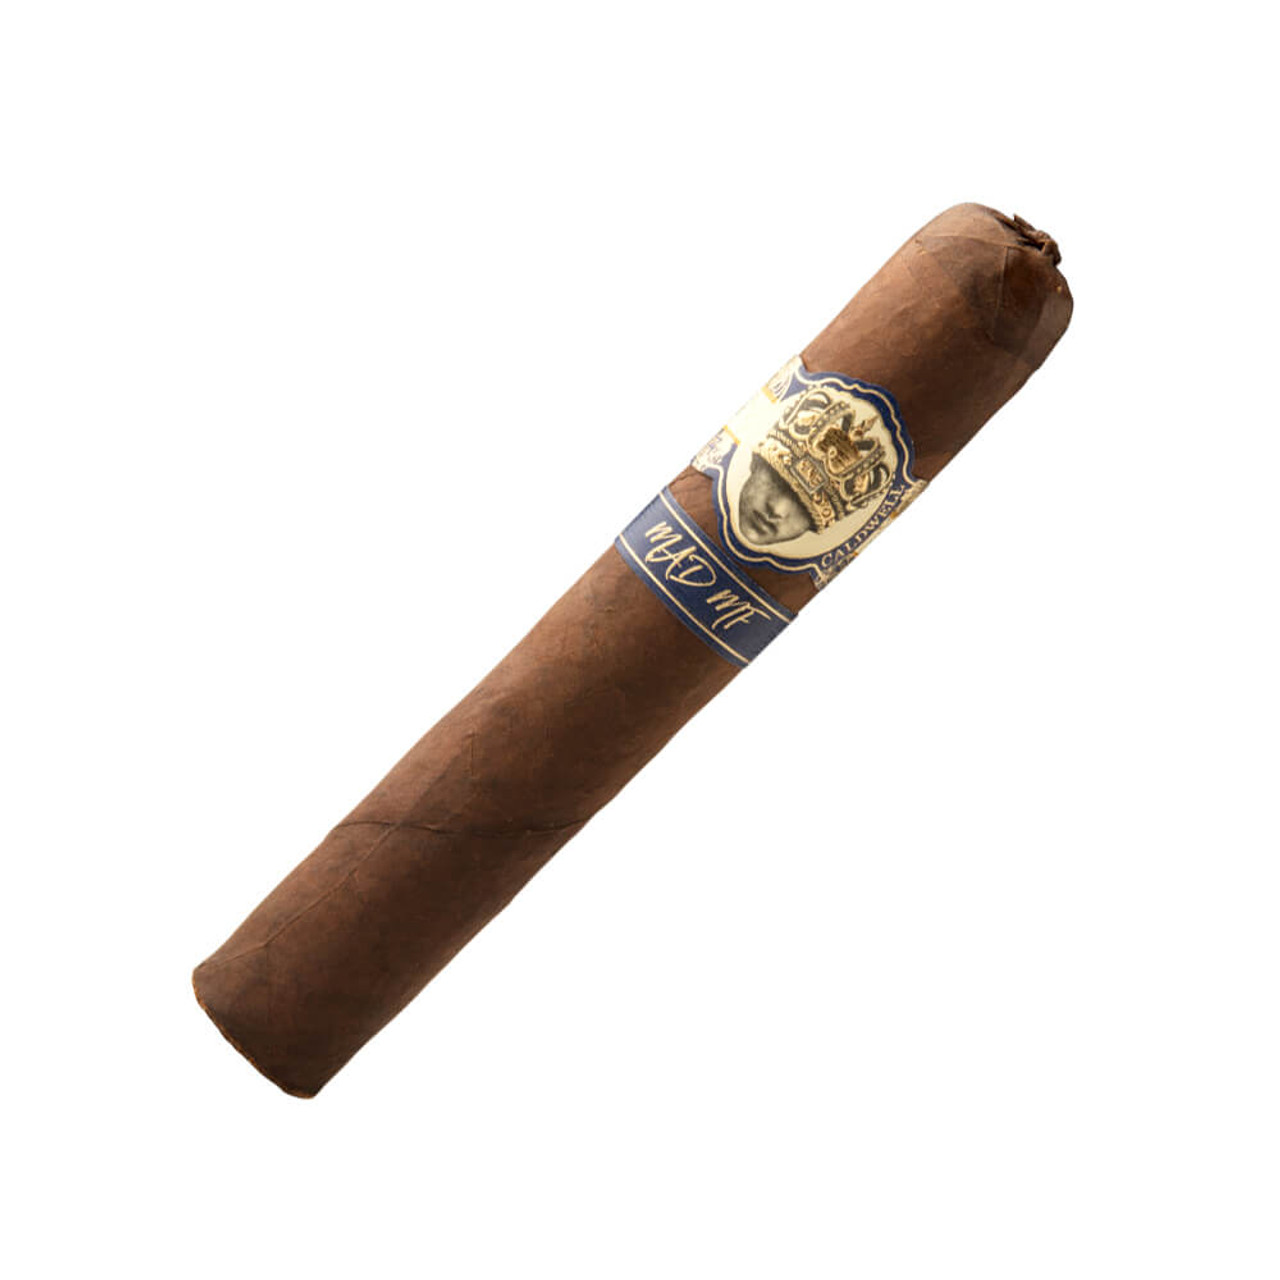 Caldwell Long Live The King Magnum Cigars - 6 x 60 (Box of 10)